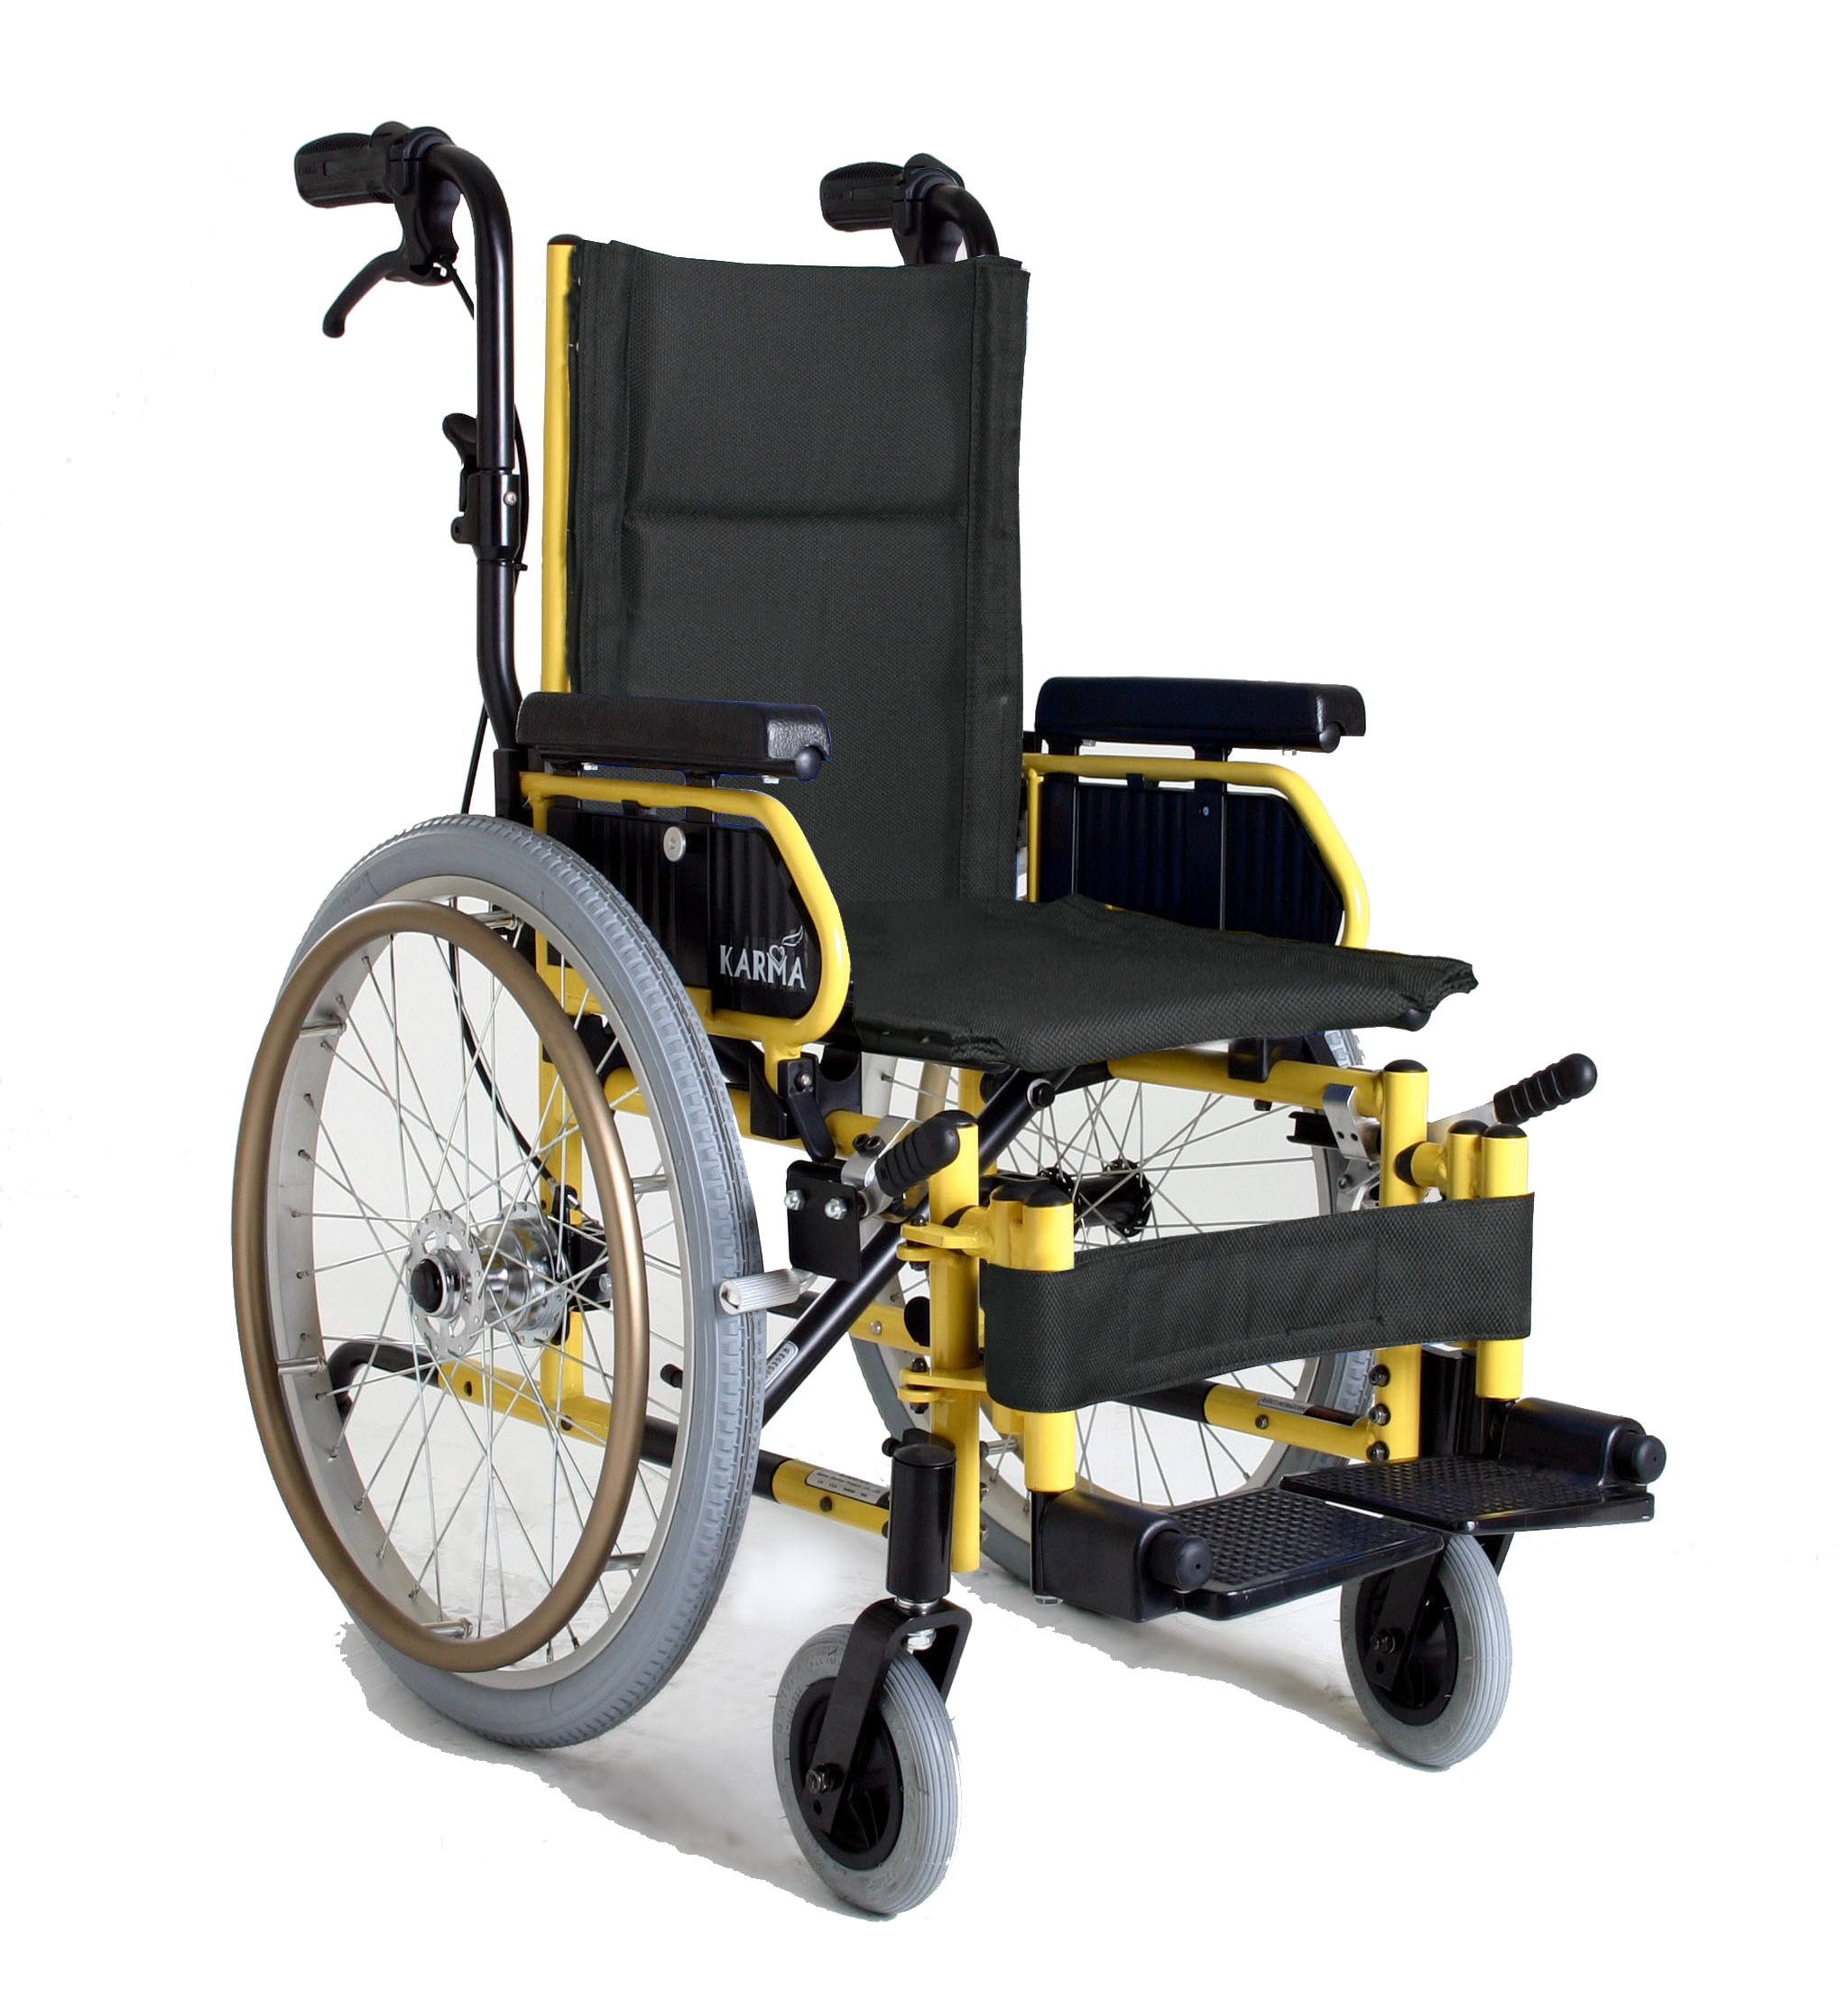 wheelchair gst dorm chairs at kohl s allied medical karma lightweight paediatric self